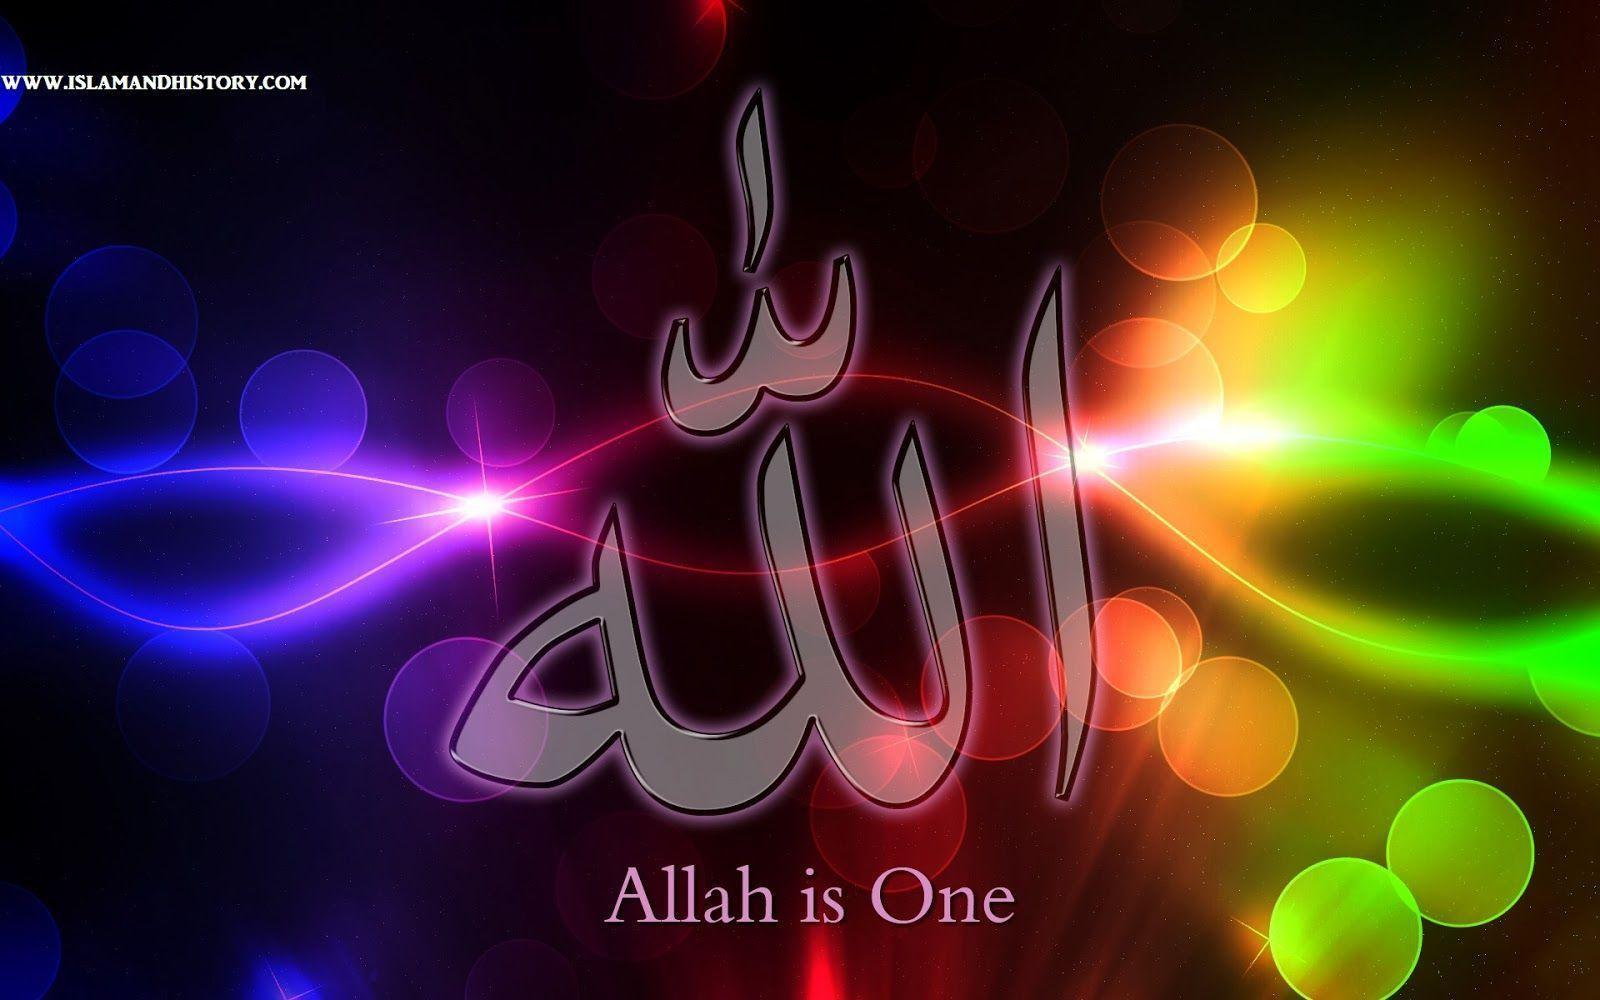 Allah Wallpapers HD 2015 - Wallpaper cave